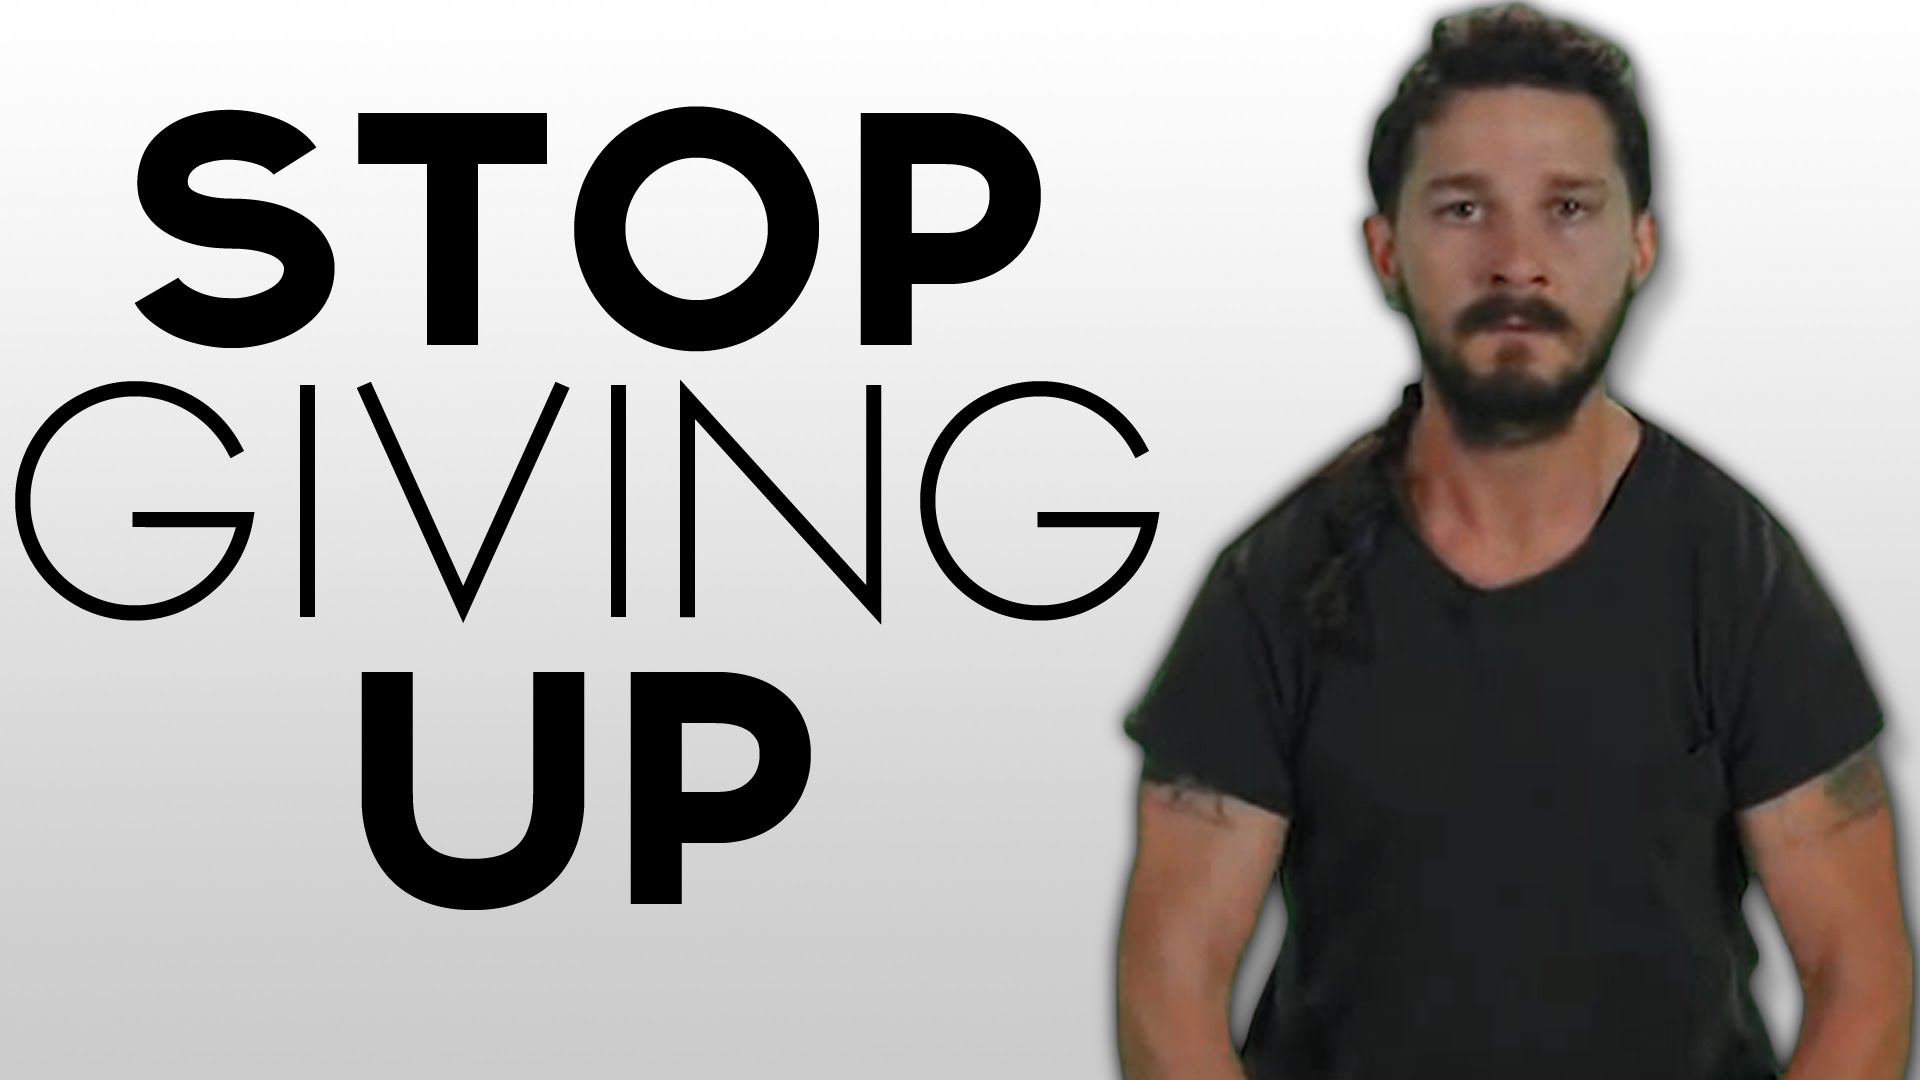 SHia stop giving upjpg